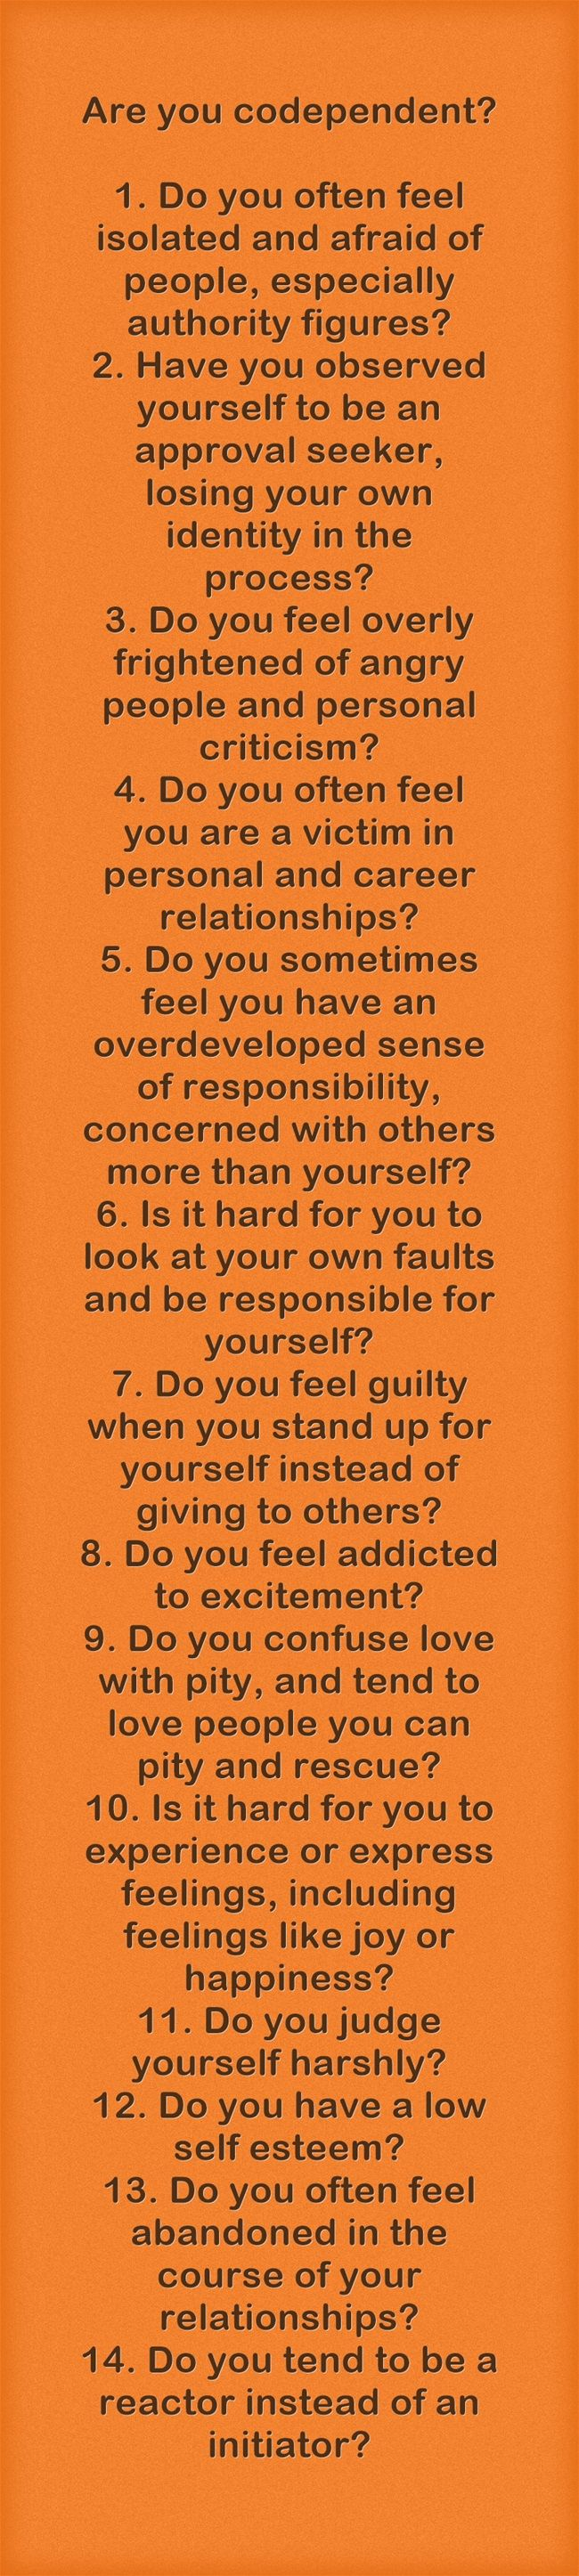 Are you codependent? If you answer yes to four of these questions, you are probably codependent. If you answer yes to six or more of these questions, you are codependent. But...there is hope and help and we can recover from codependency!